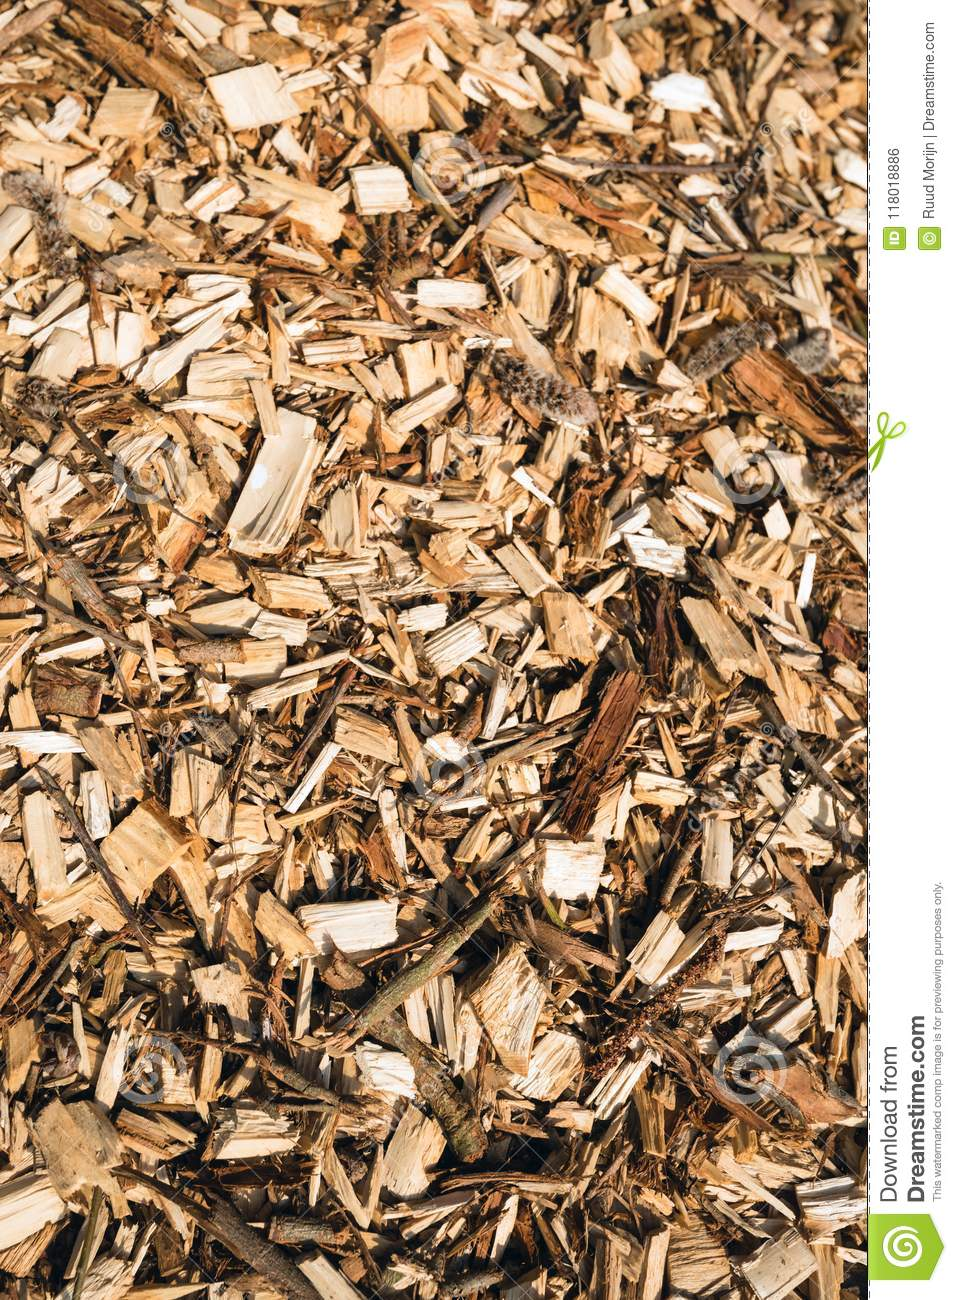 Wood chips up close